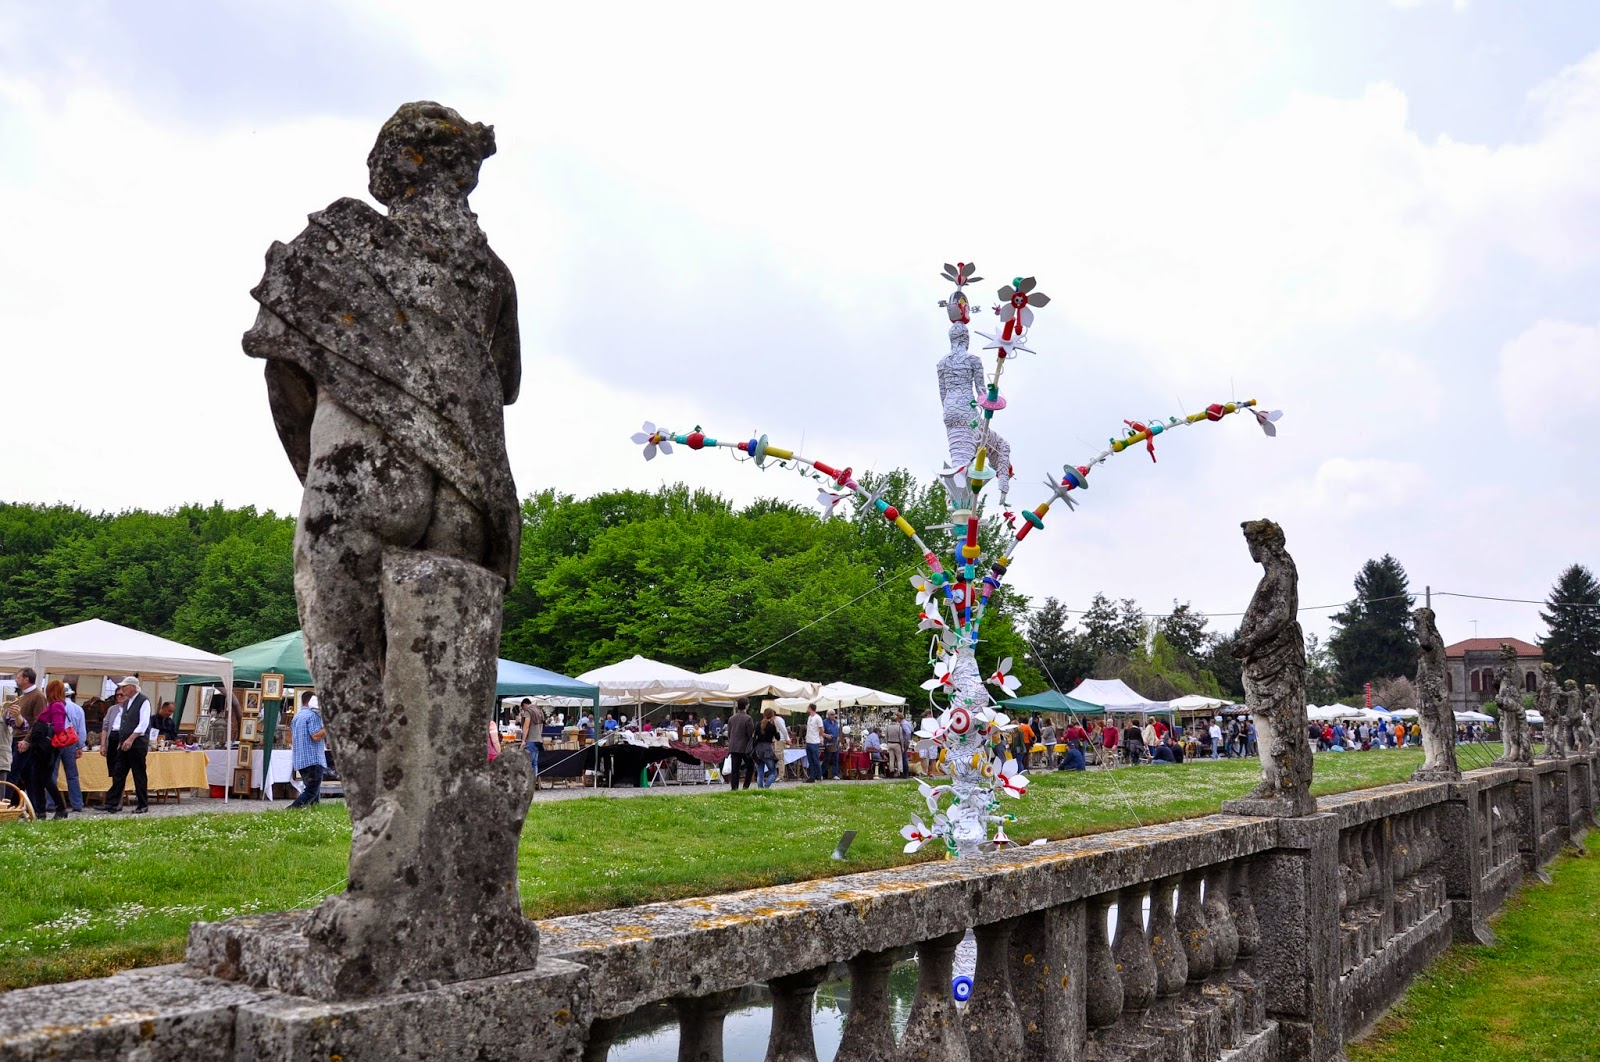 A view of the antiques market and a piece of modern art, Piazzola sul Brenta, Veneto, Italy